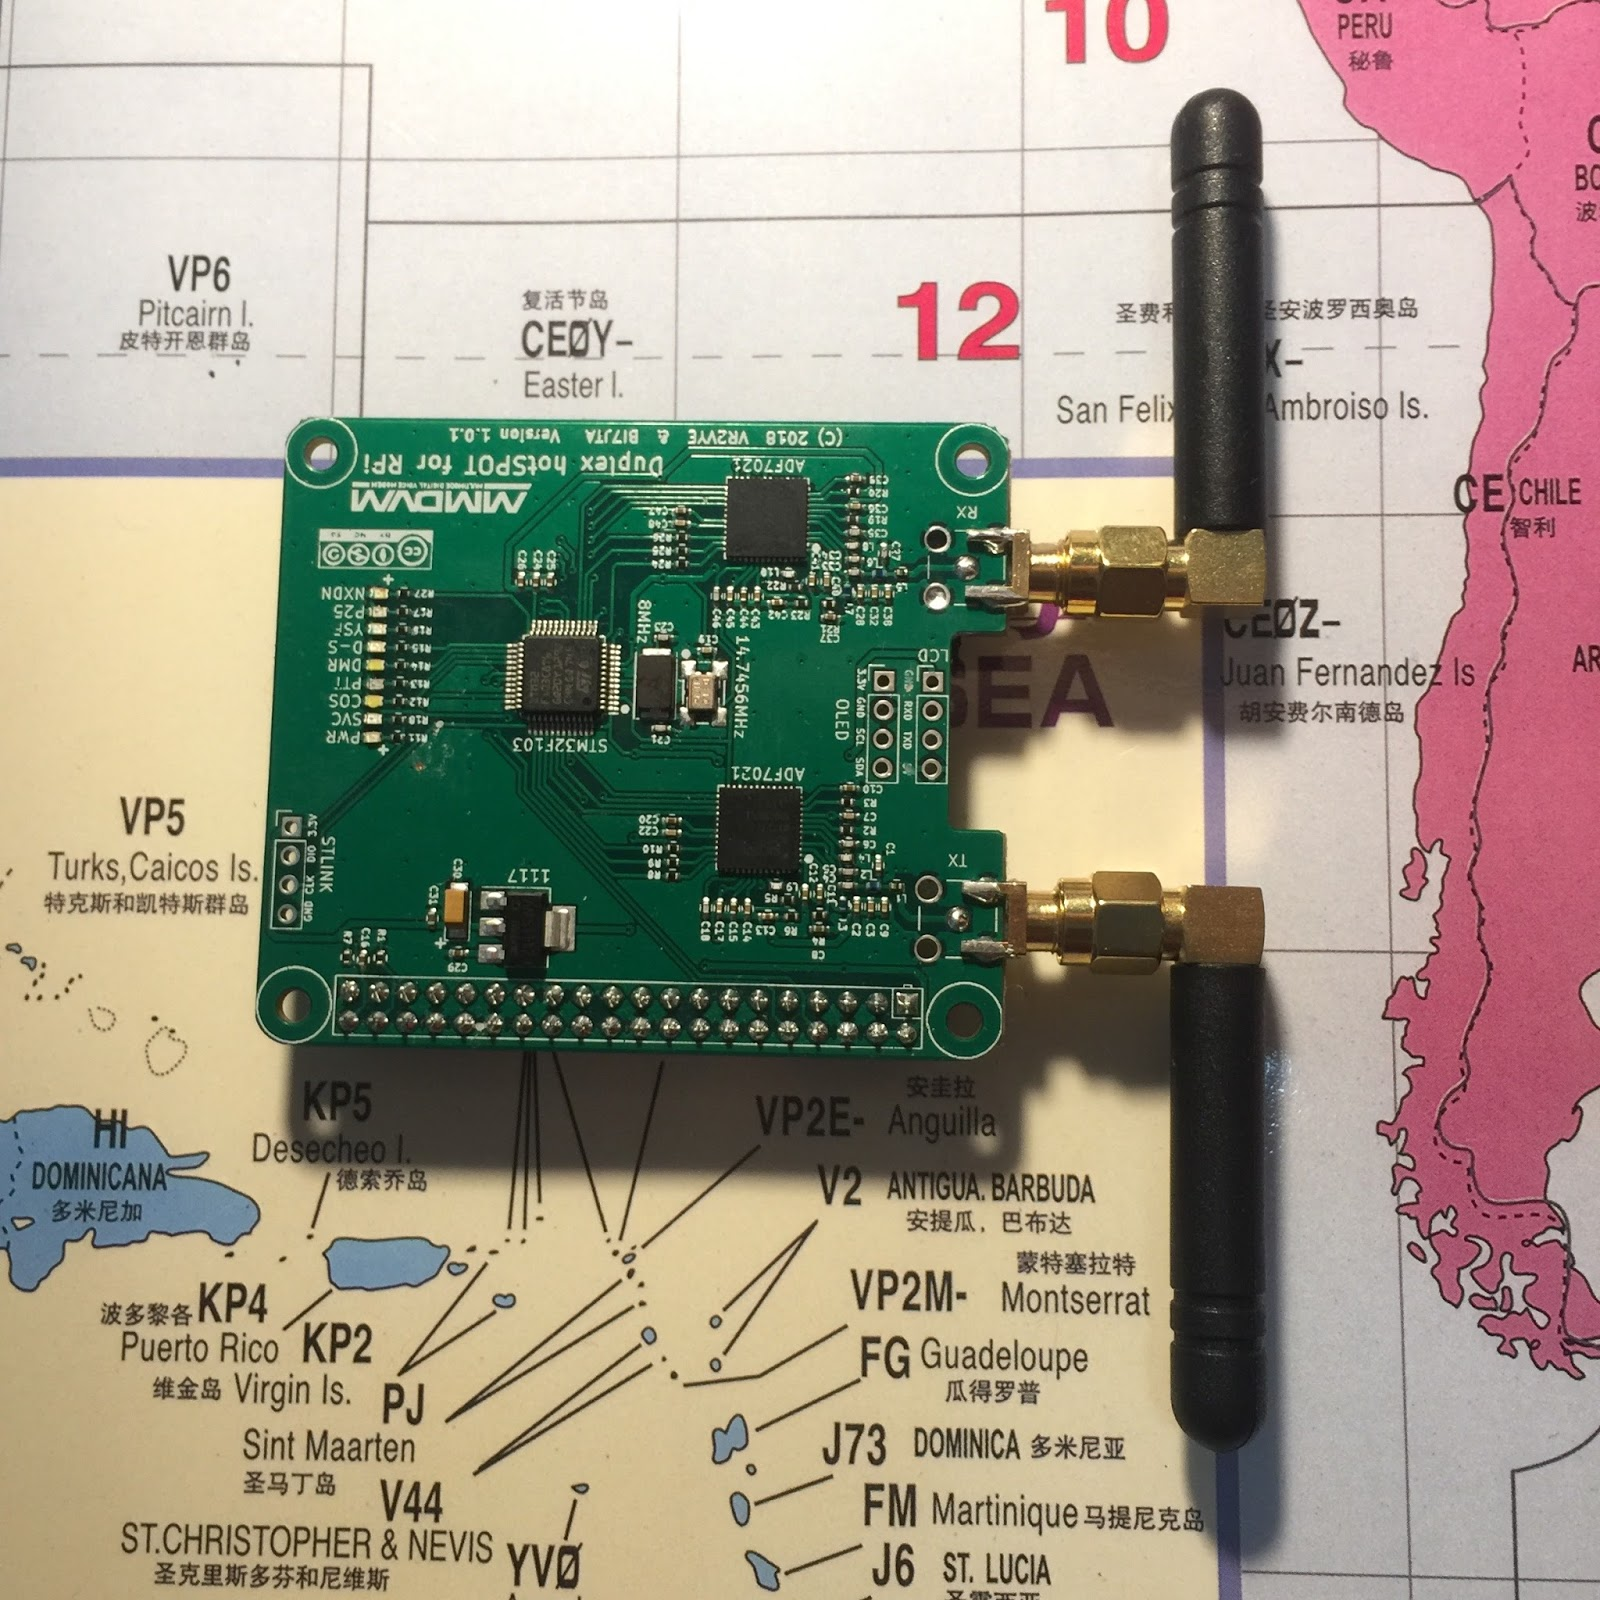 BI7JTA BLOG for MMDVM: All product and my Amateur Radio Toys